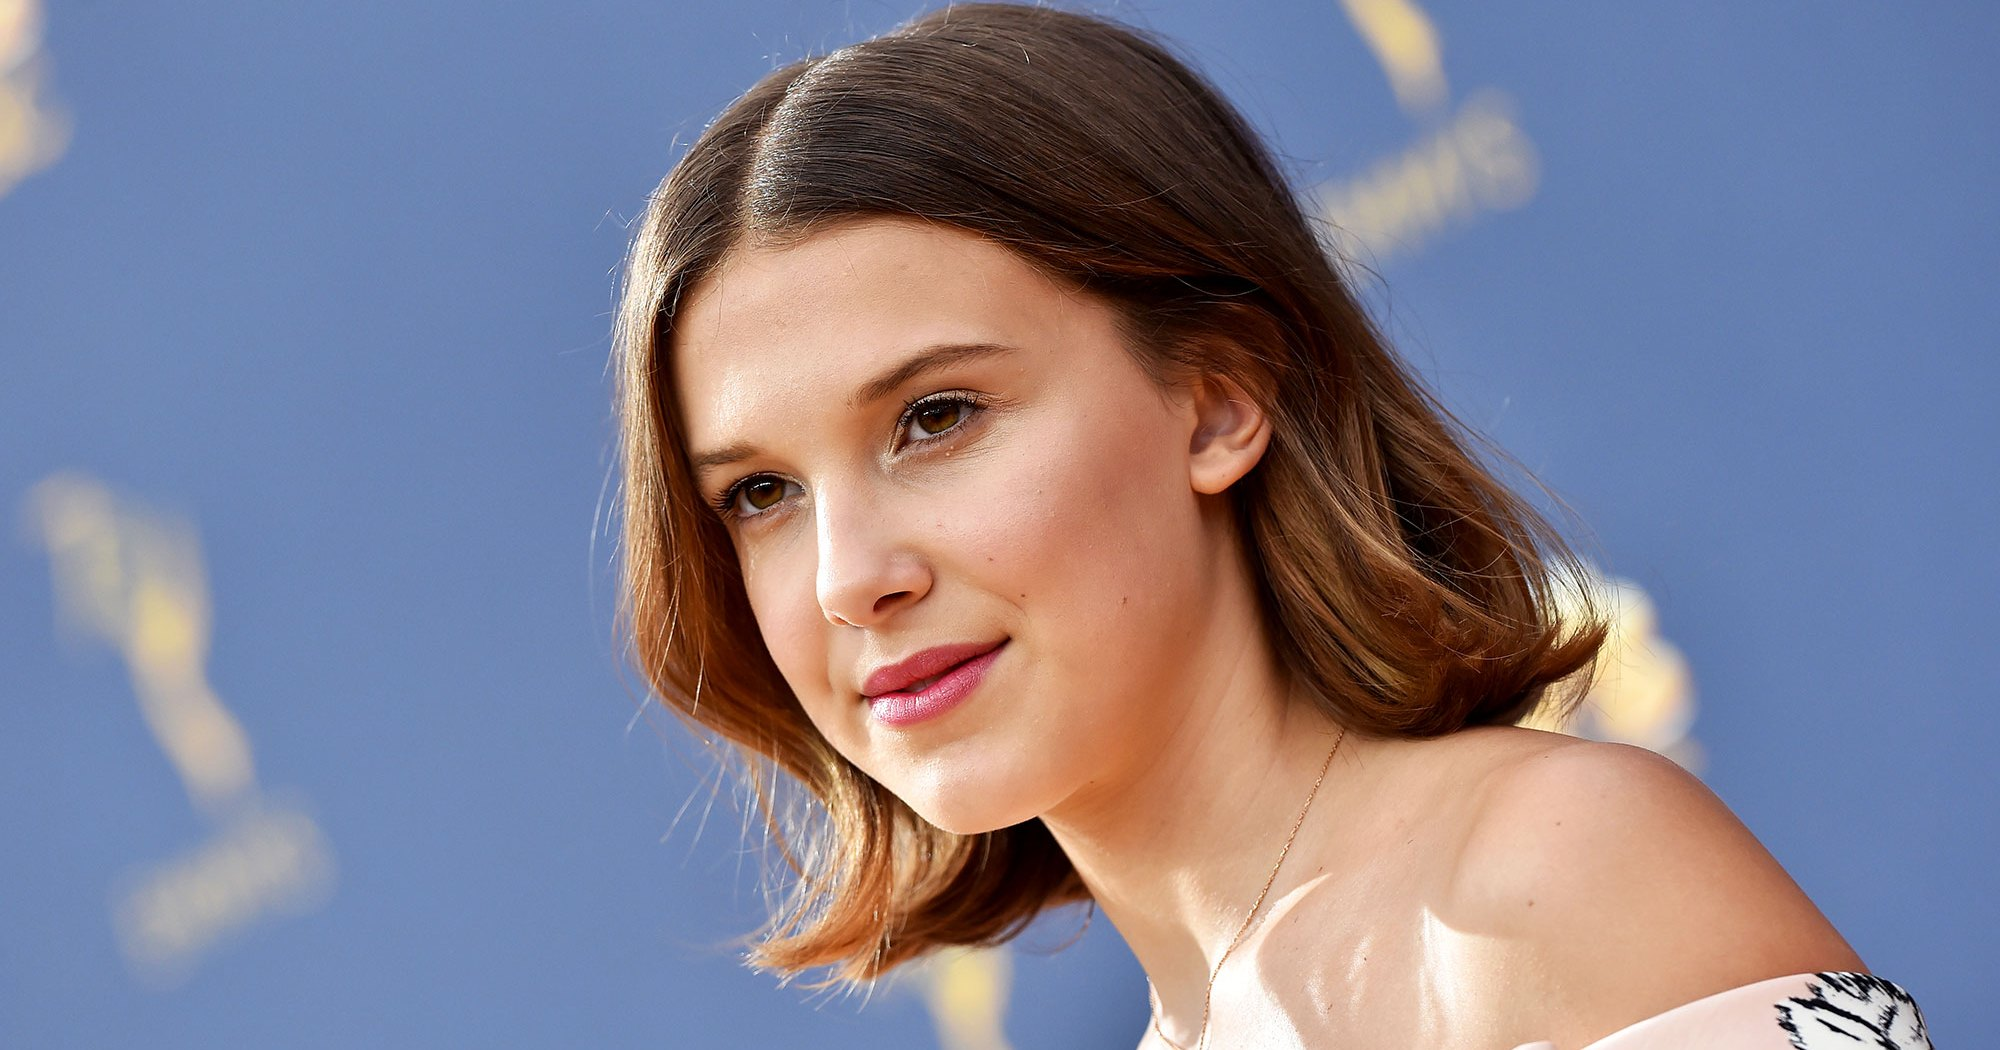 Millie Bobby Brown Gets Criticized for Wearing Tight Dress, Perfectly Claps Back at Trolls Who Tell Her to Act Her Age